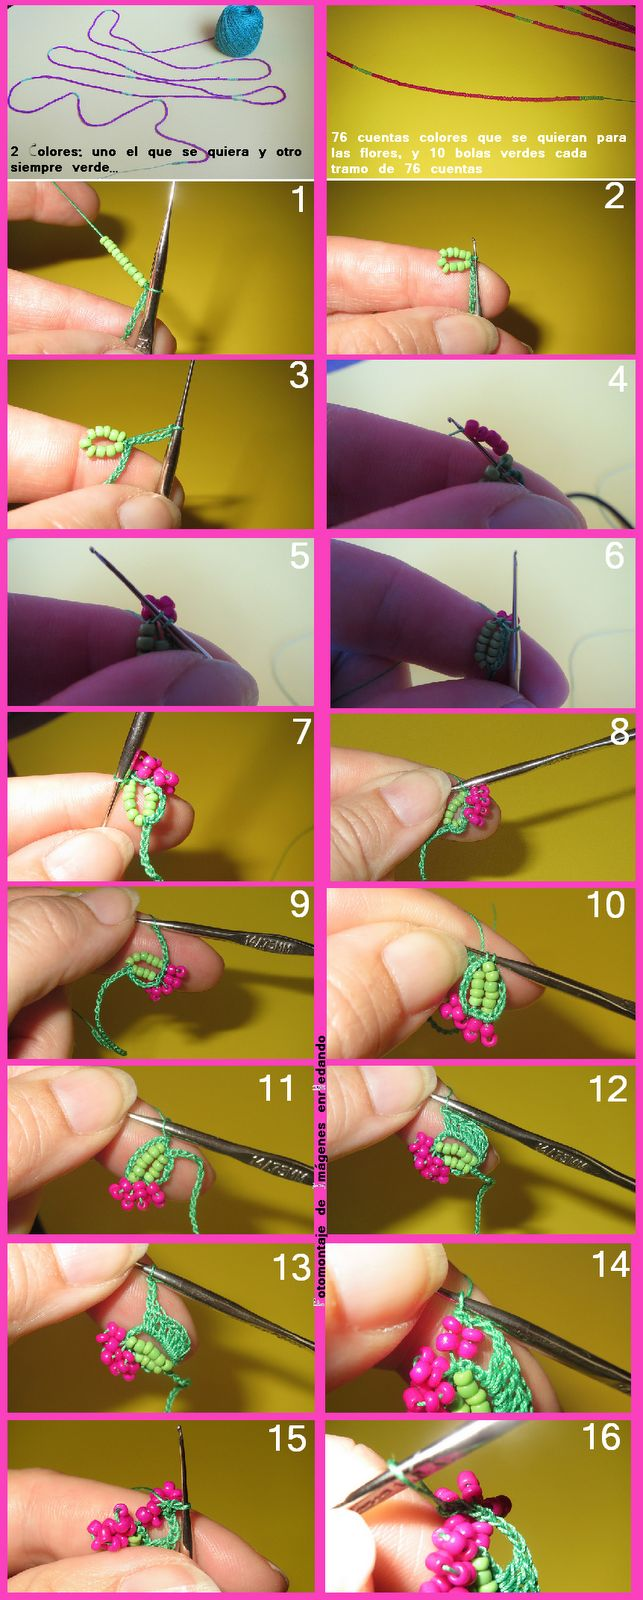 oya crochet step by step